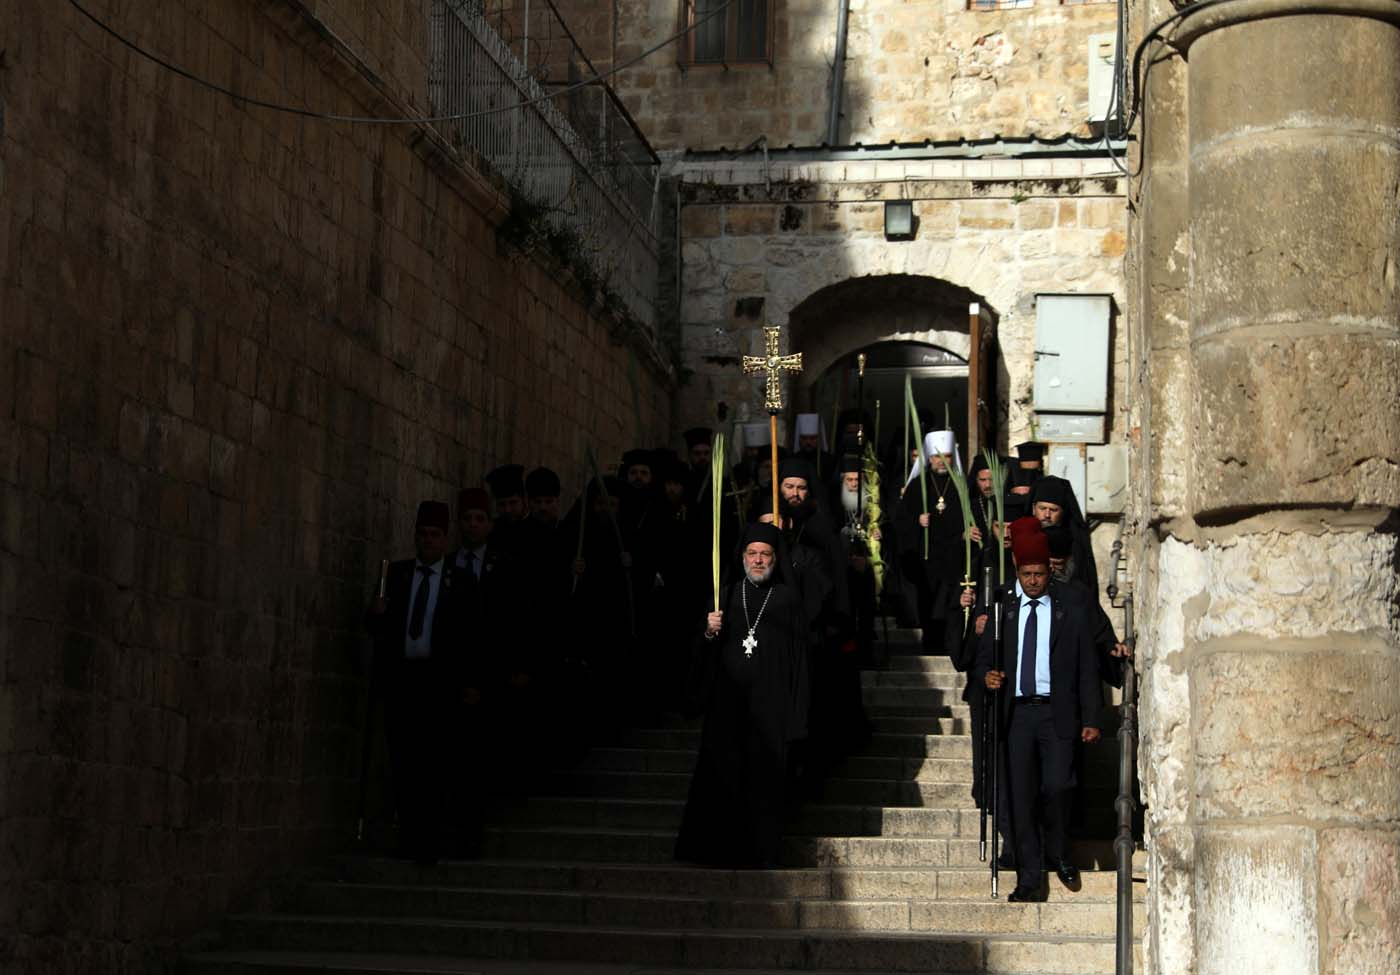 Members of the Orthodox Christian clergy take part in a Palm Sunday ceremony as they walk towards the Church of the Holy Sepulchre in Jerusalem's Old City April 9, 2017. REUTERS/Ammar Awad